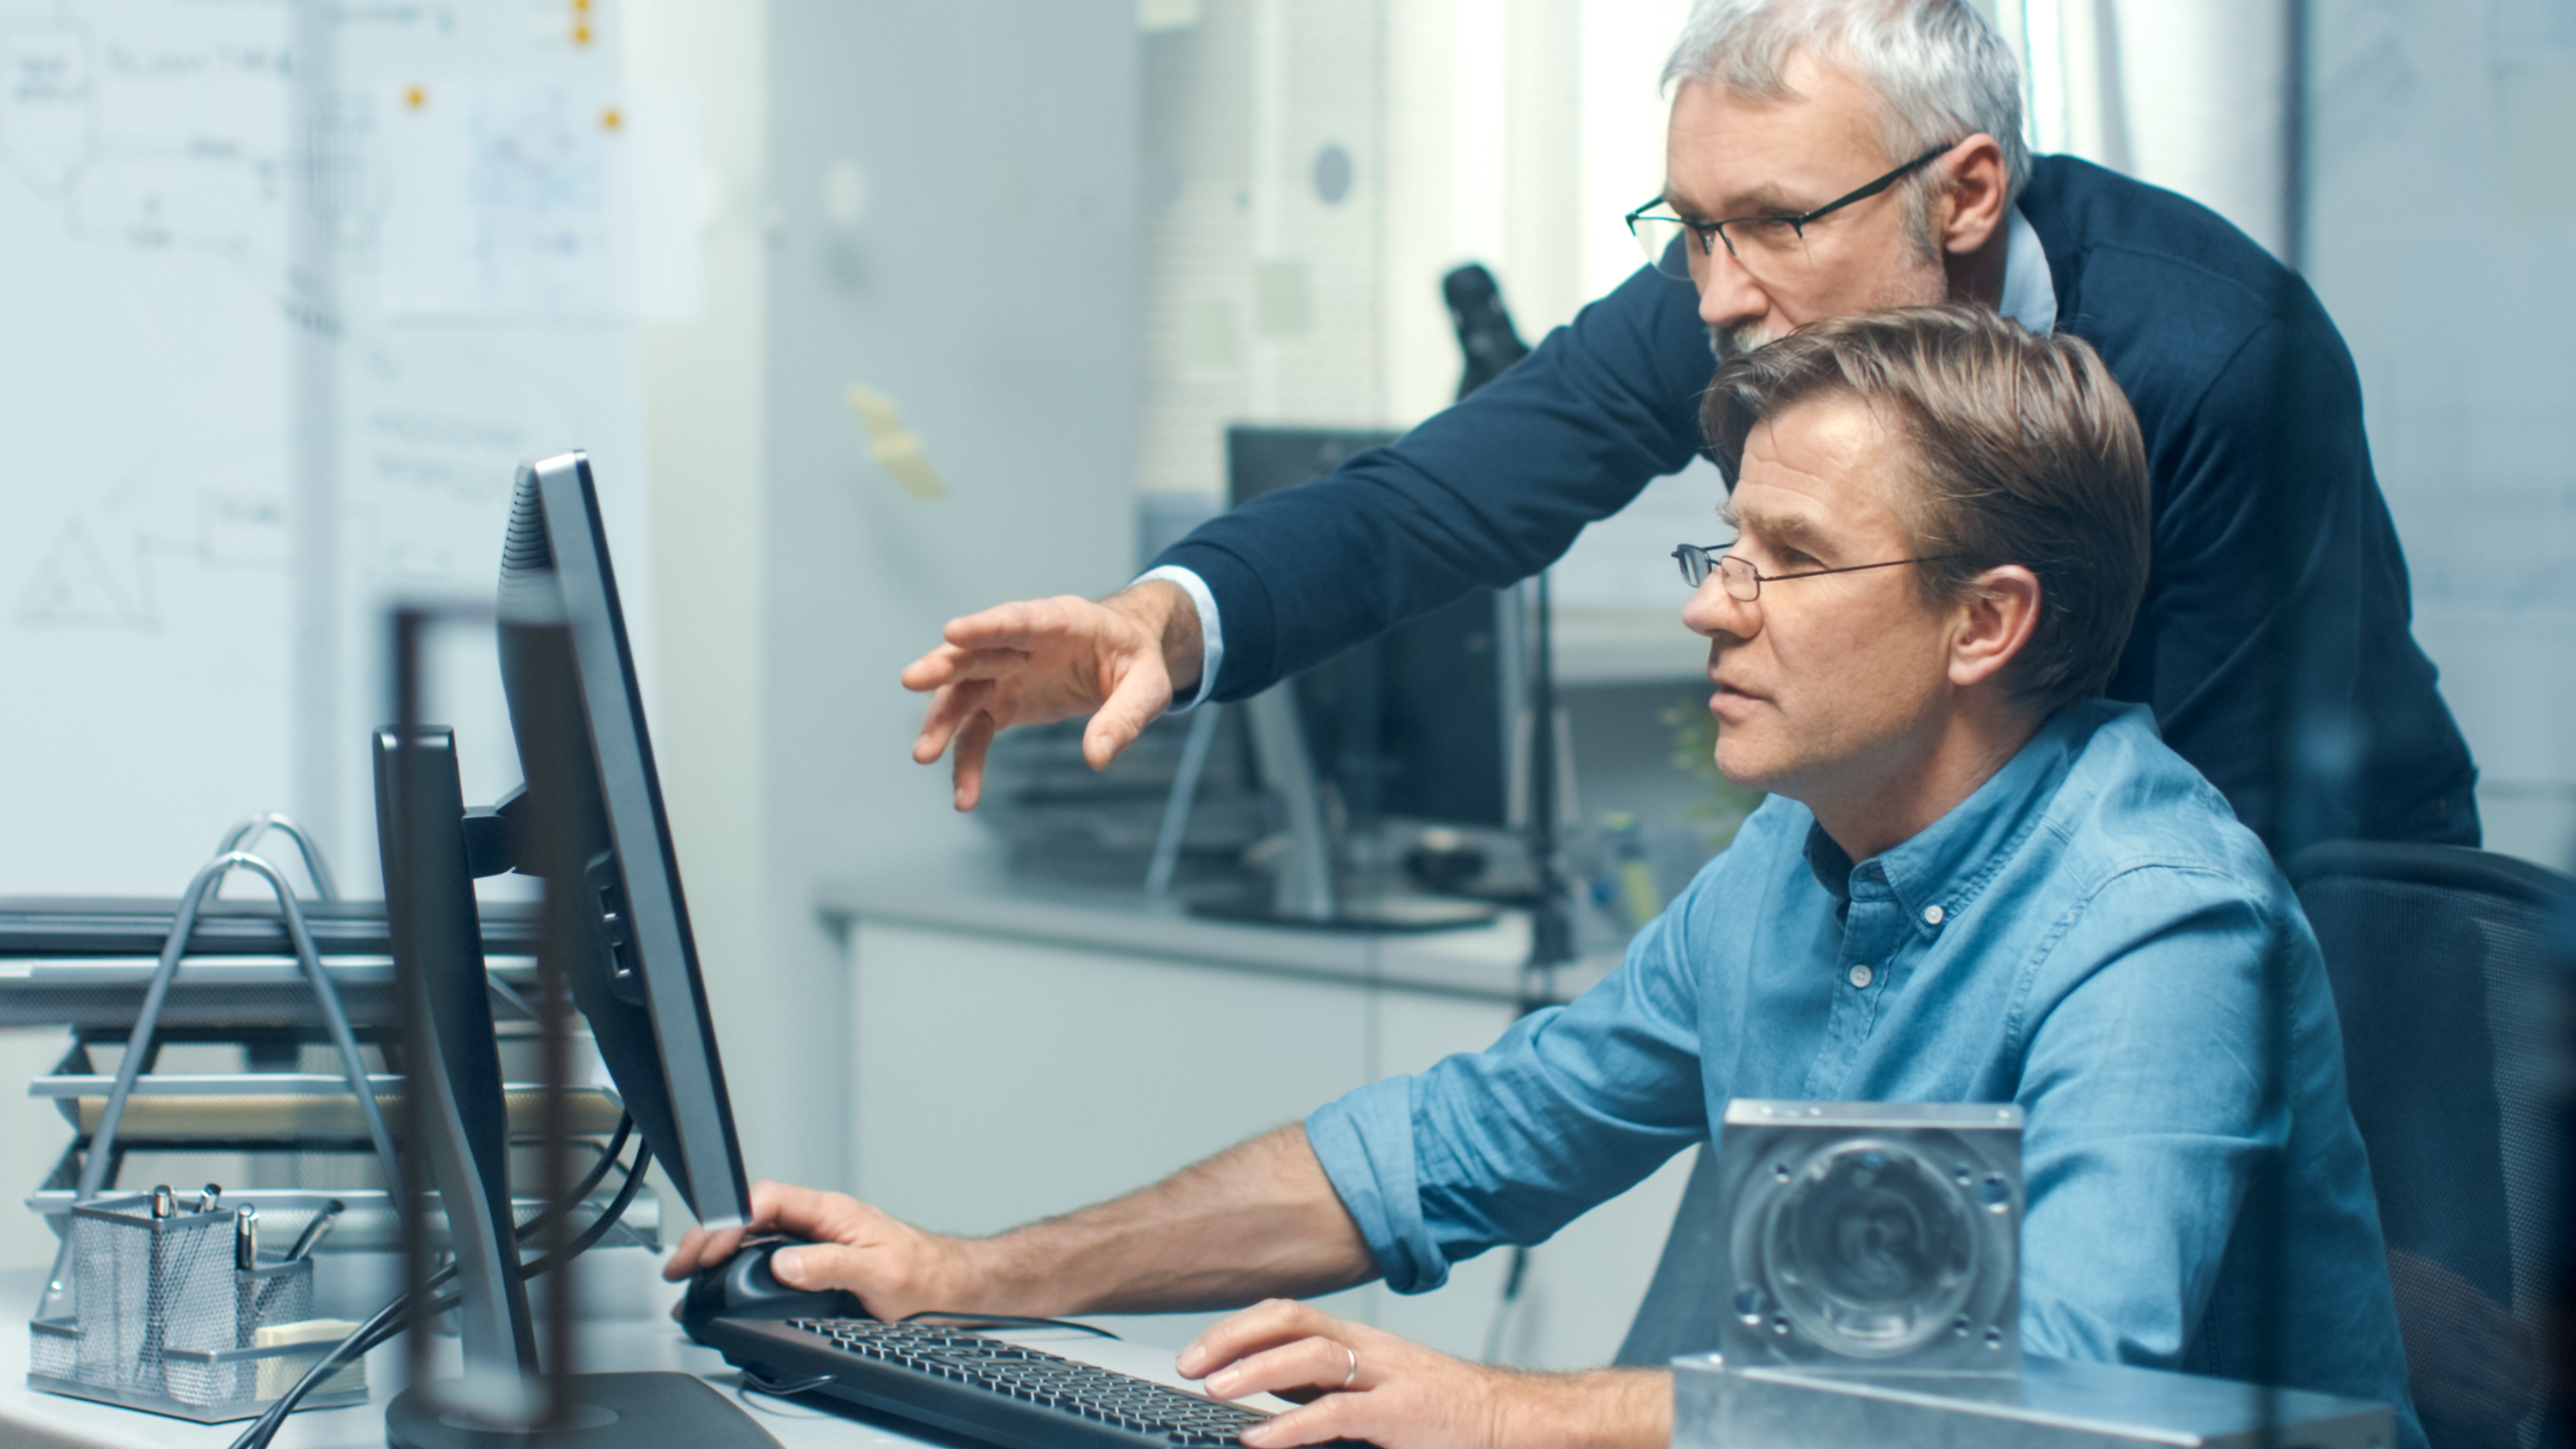 Engineers looking at a computer